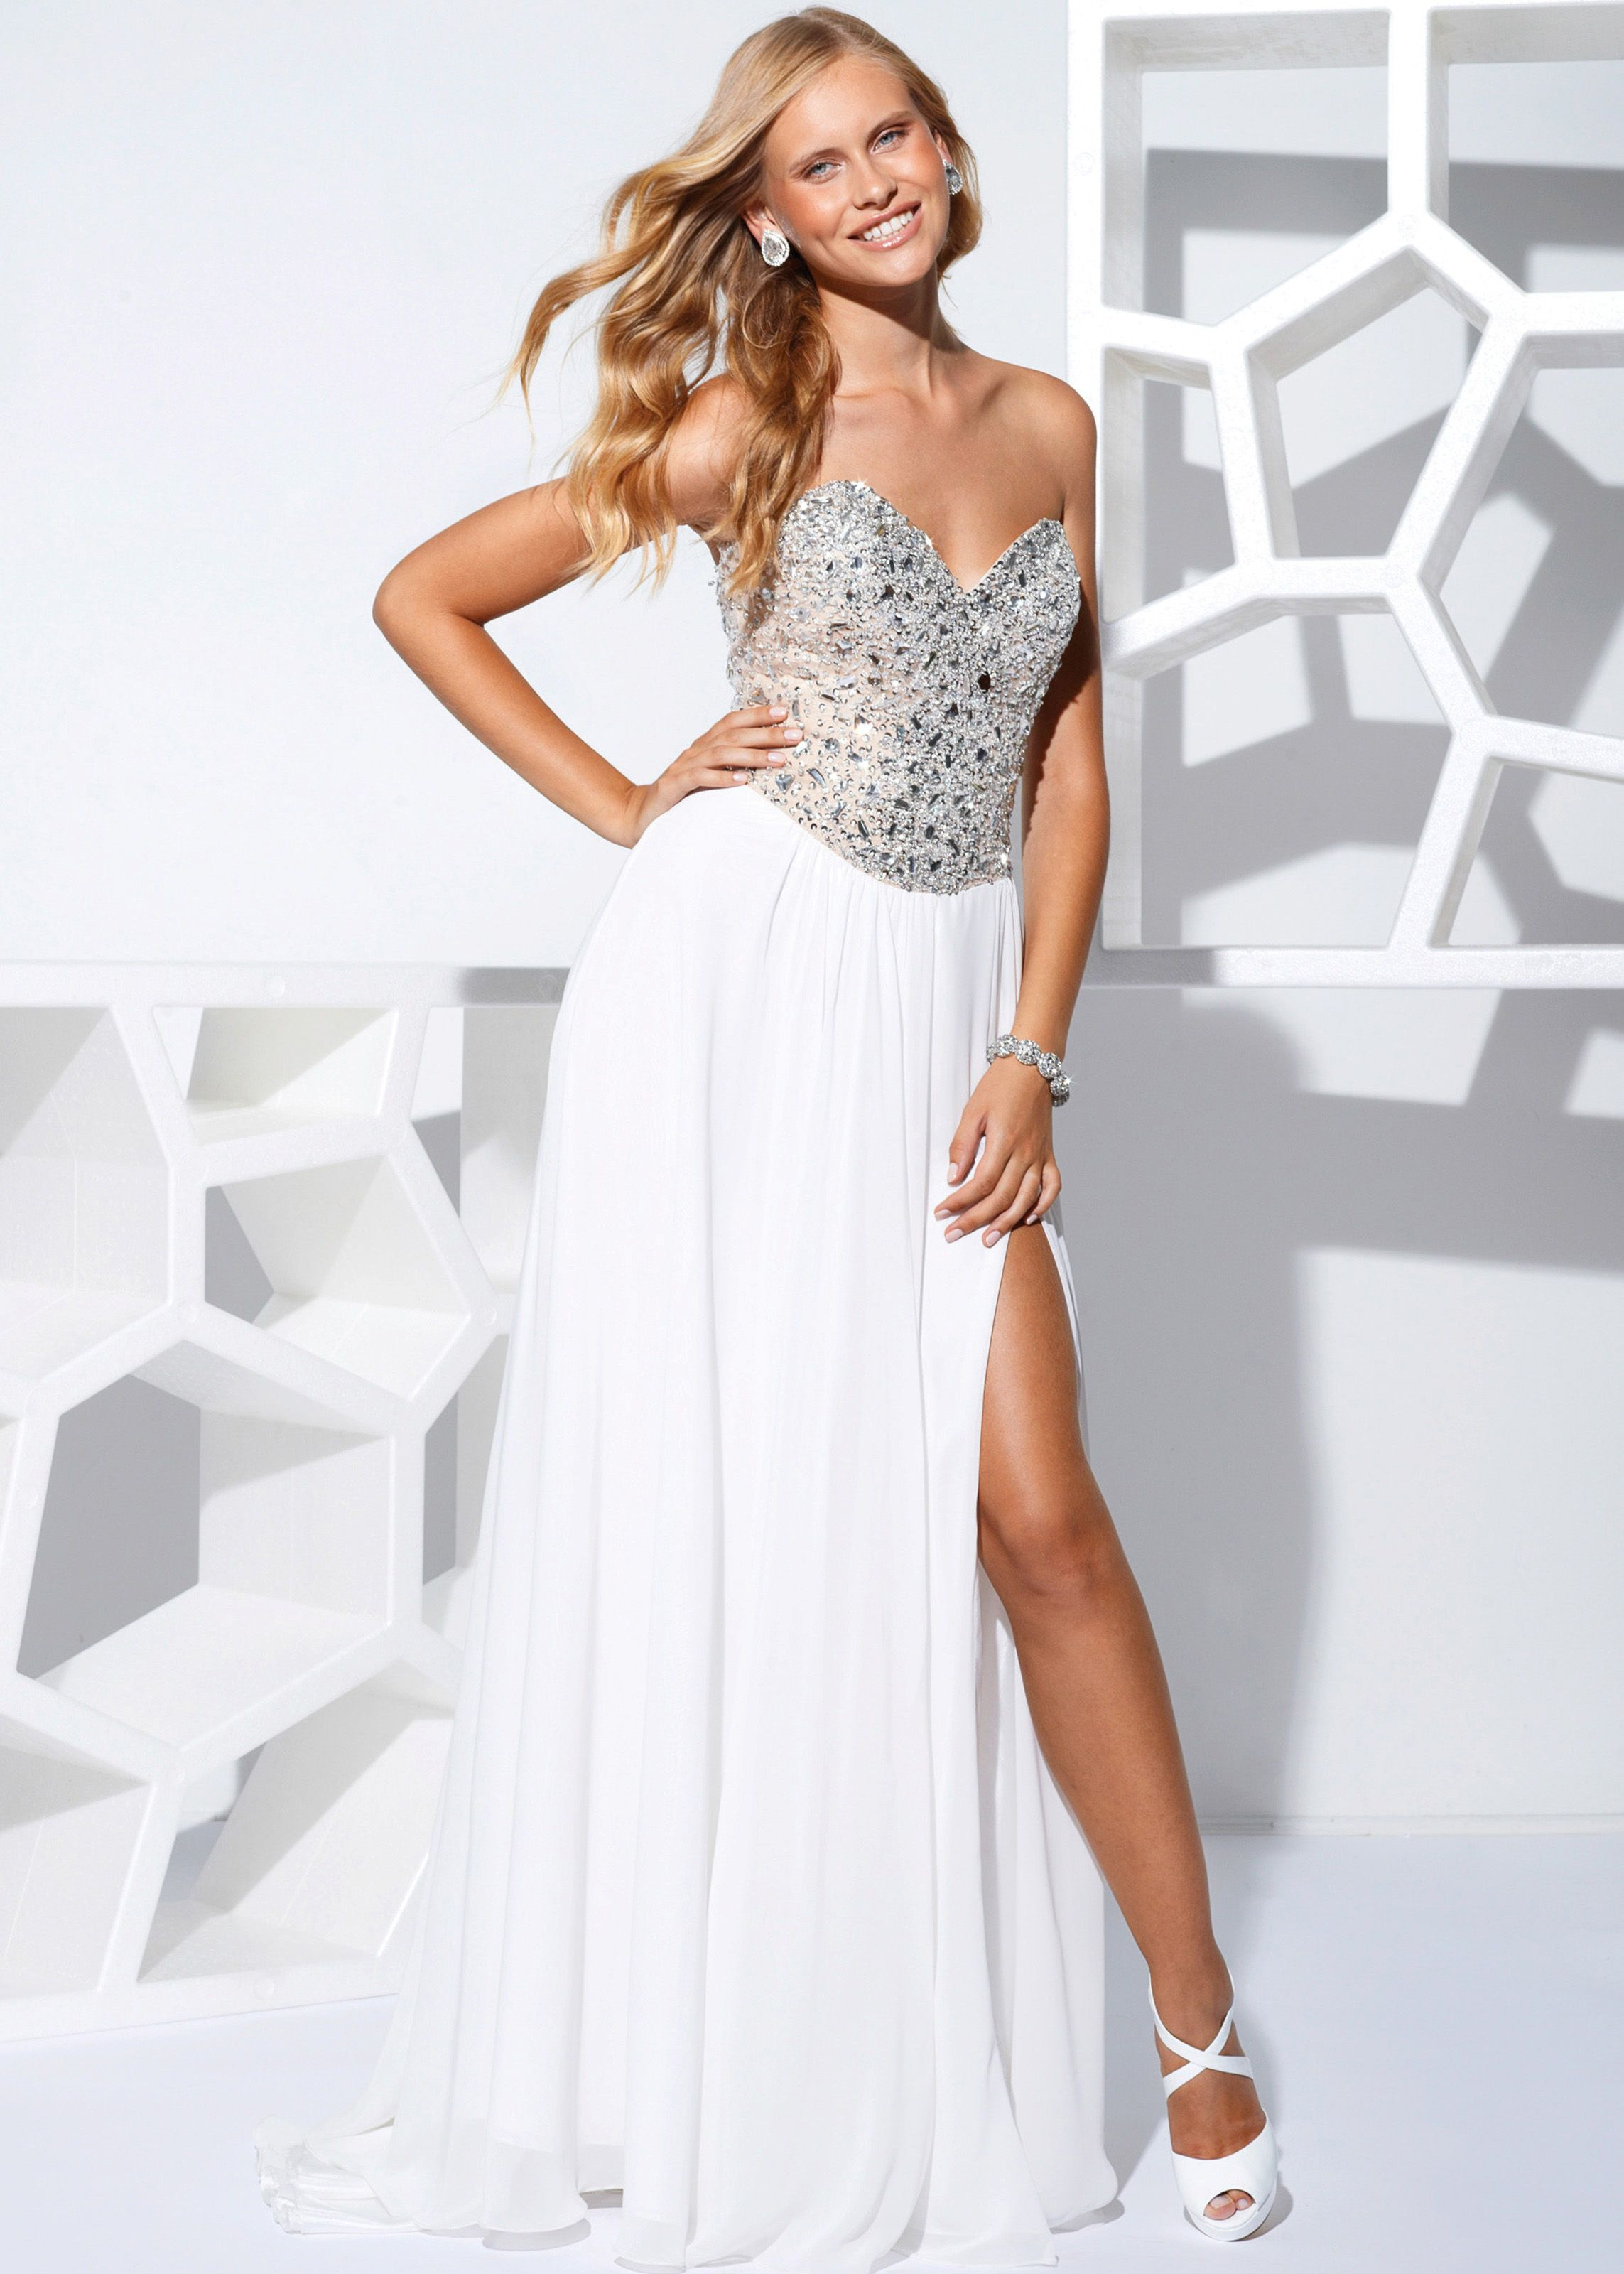 Buy now Terani Couture P1529 white long flowing prom dresses available now at RissyRoos.com.